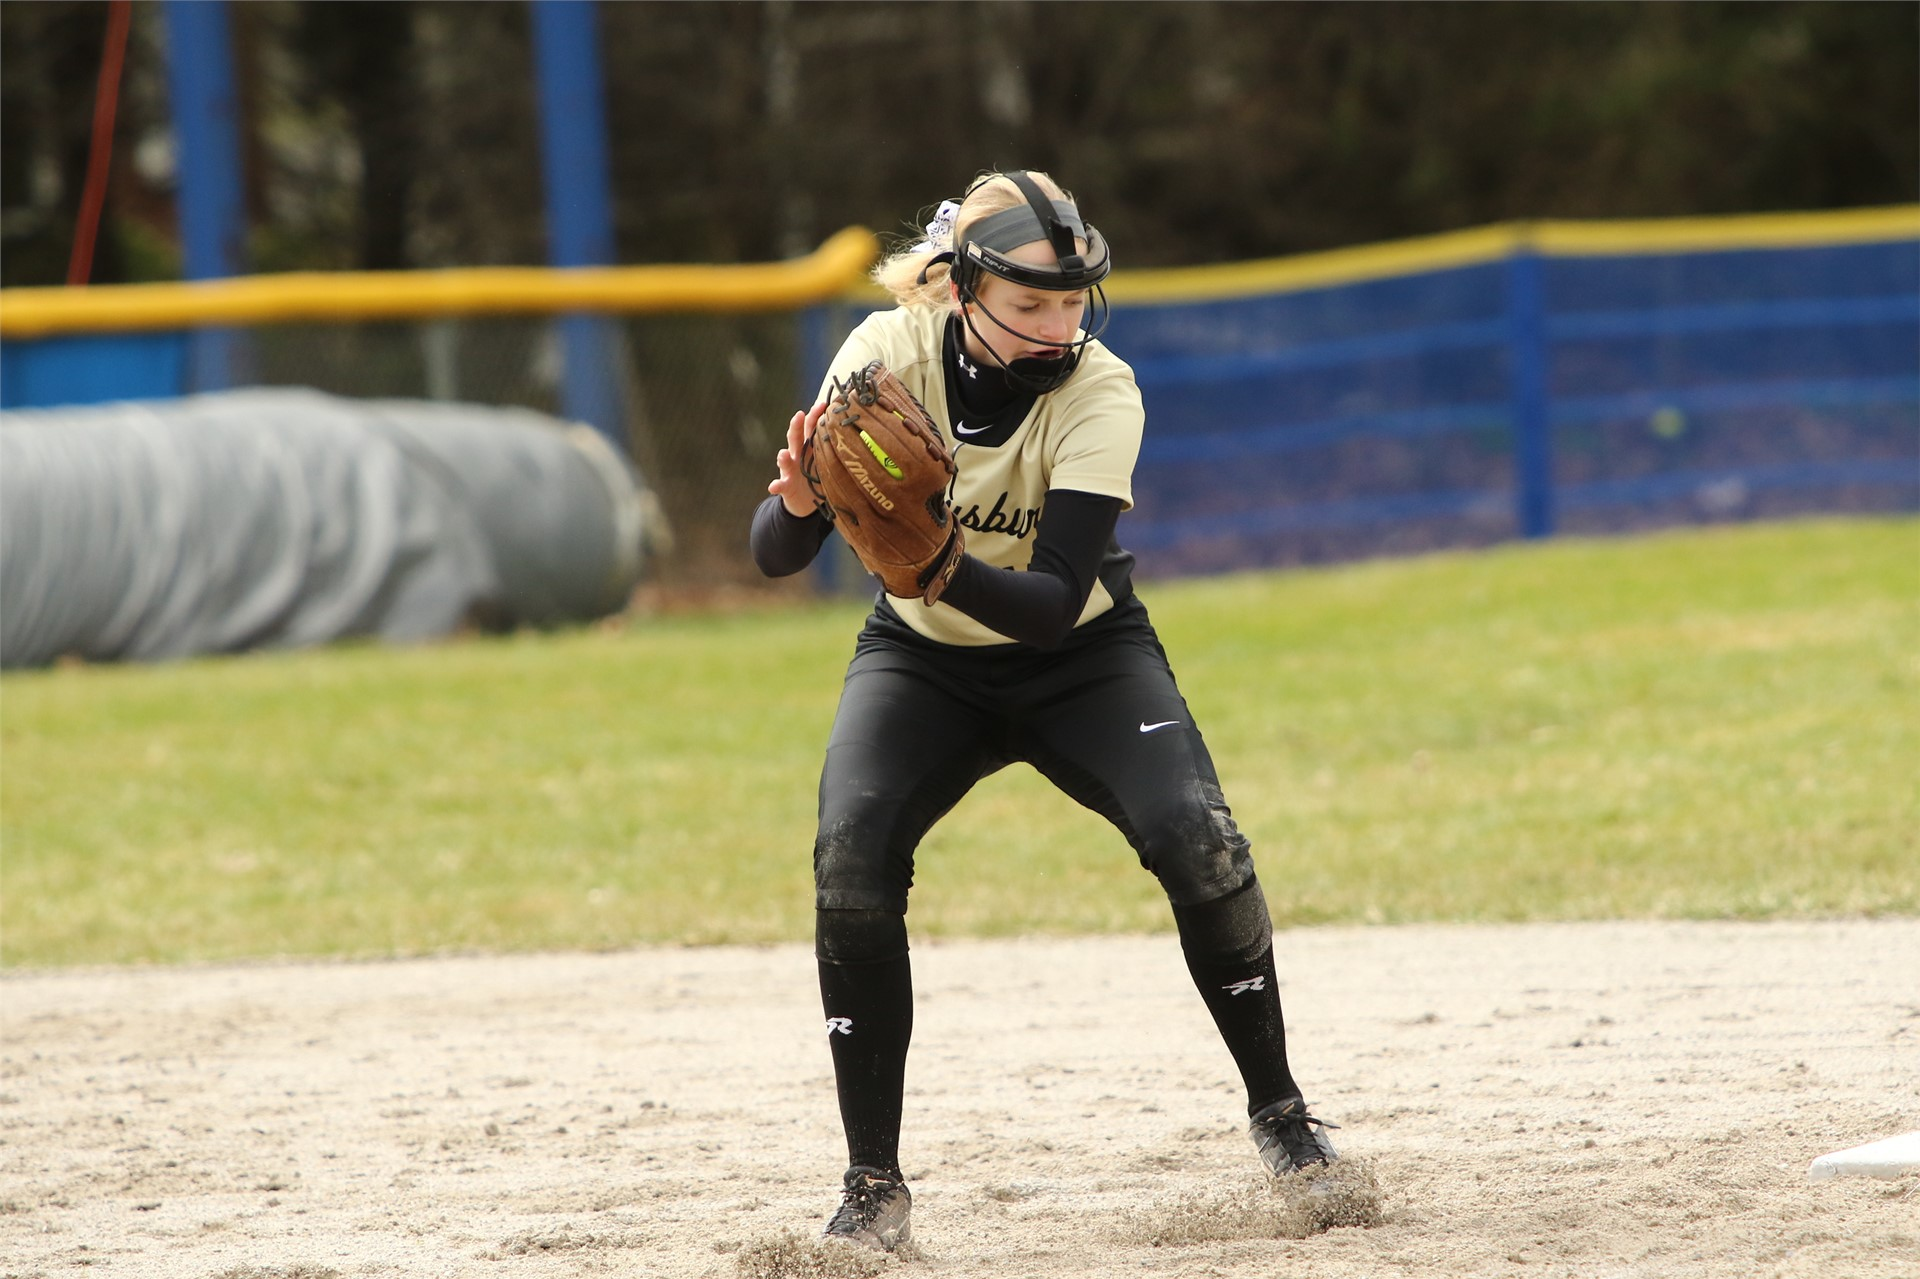 softball player fielding